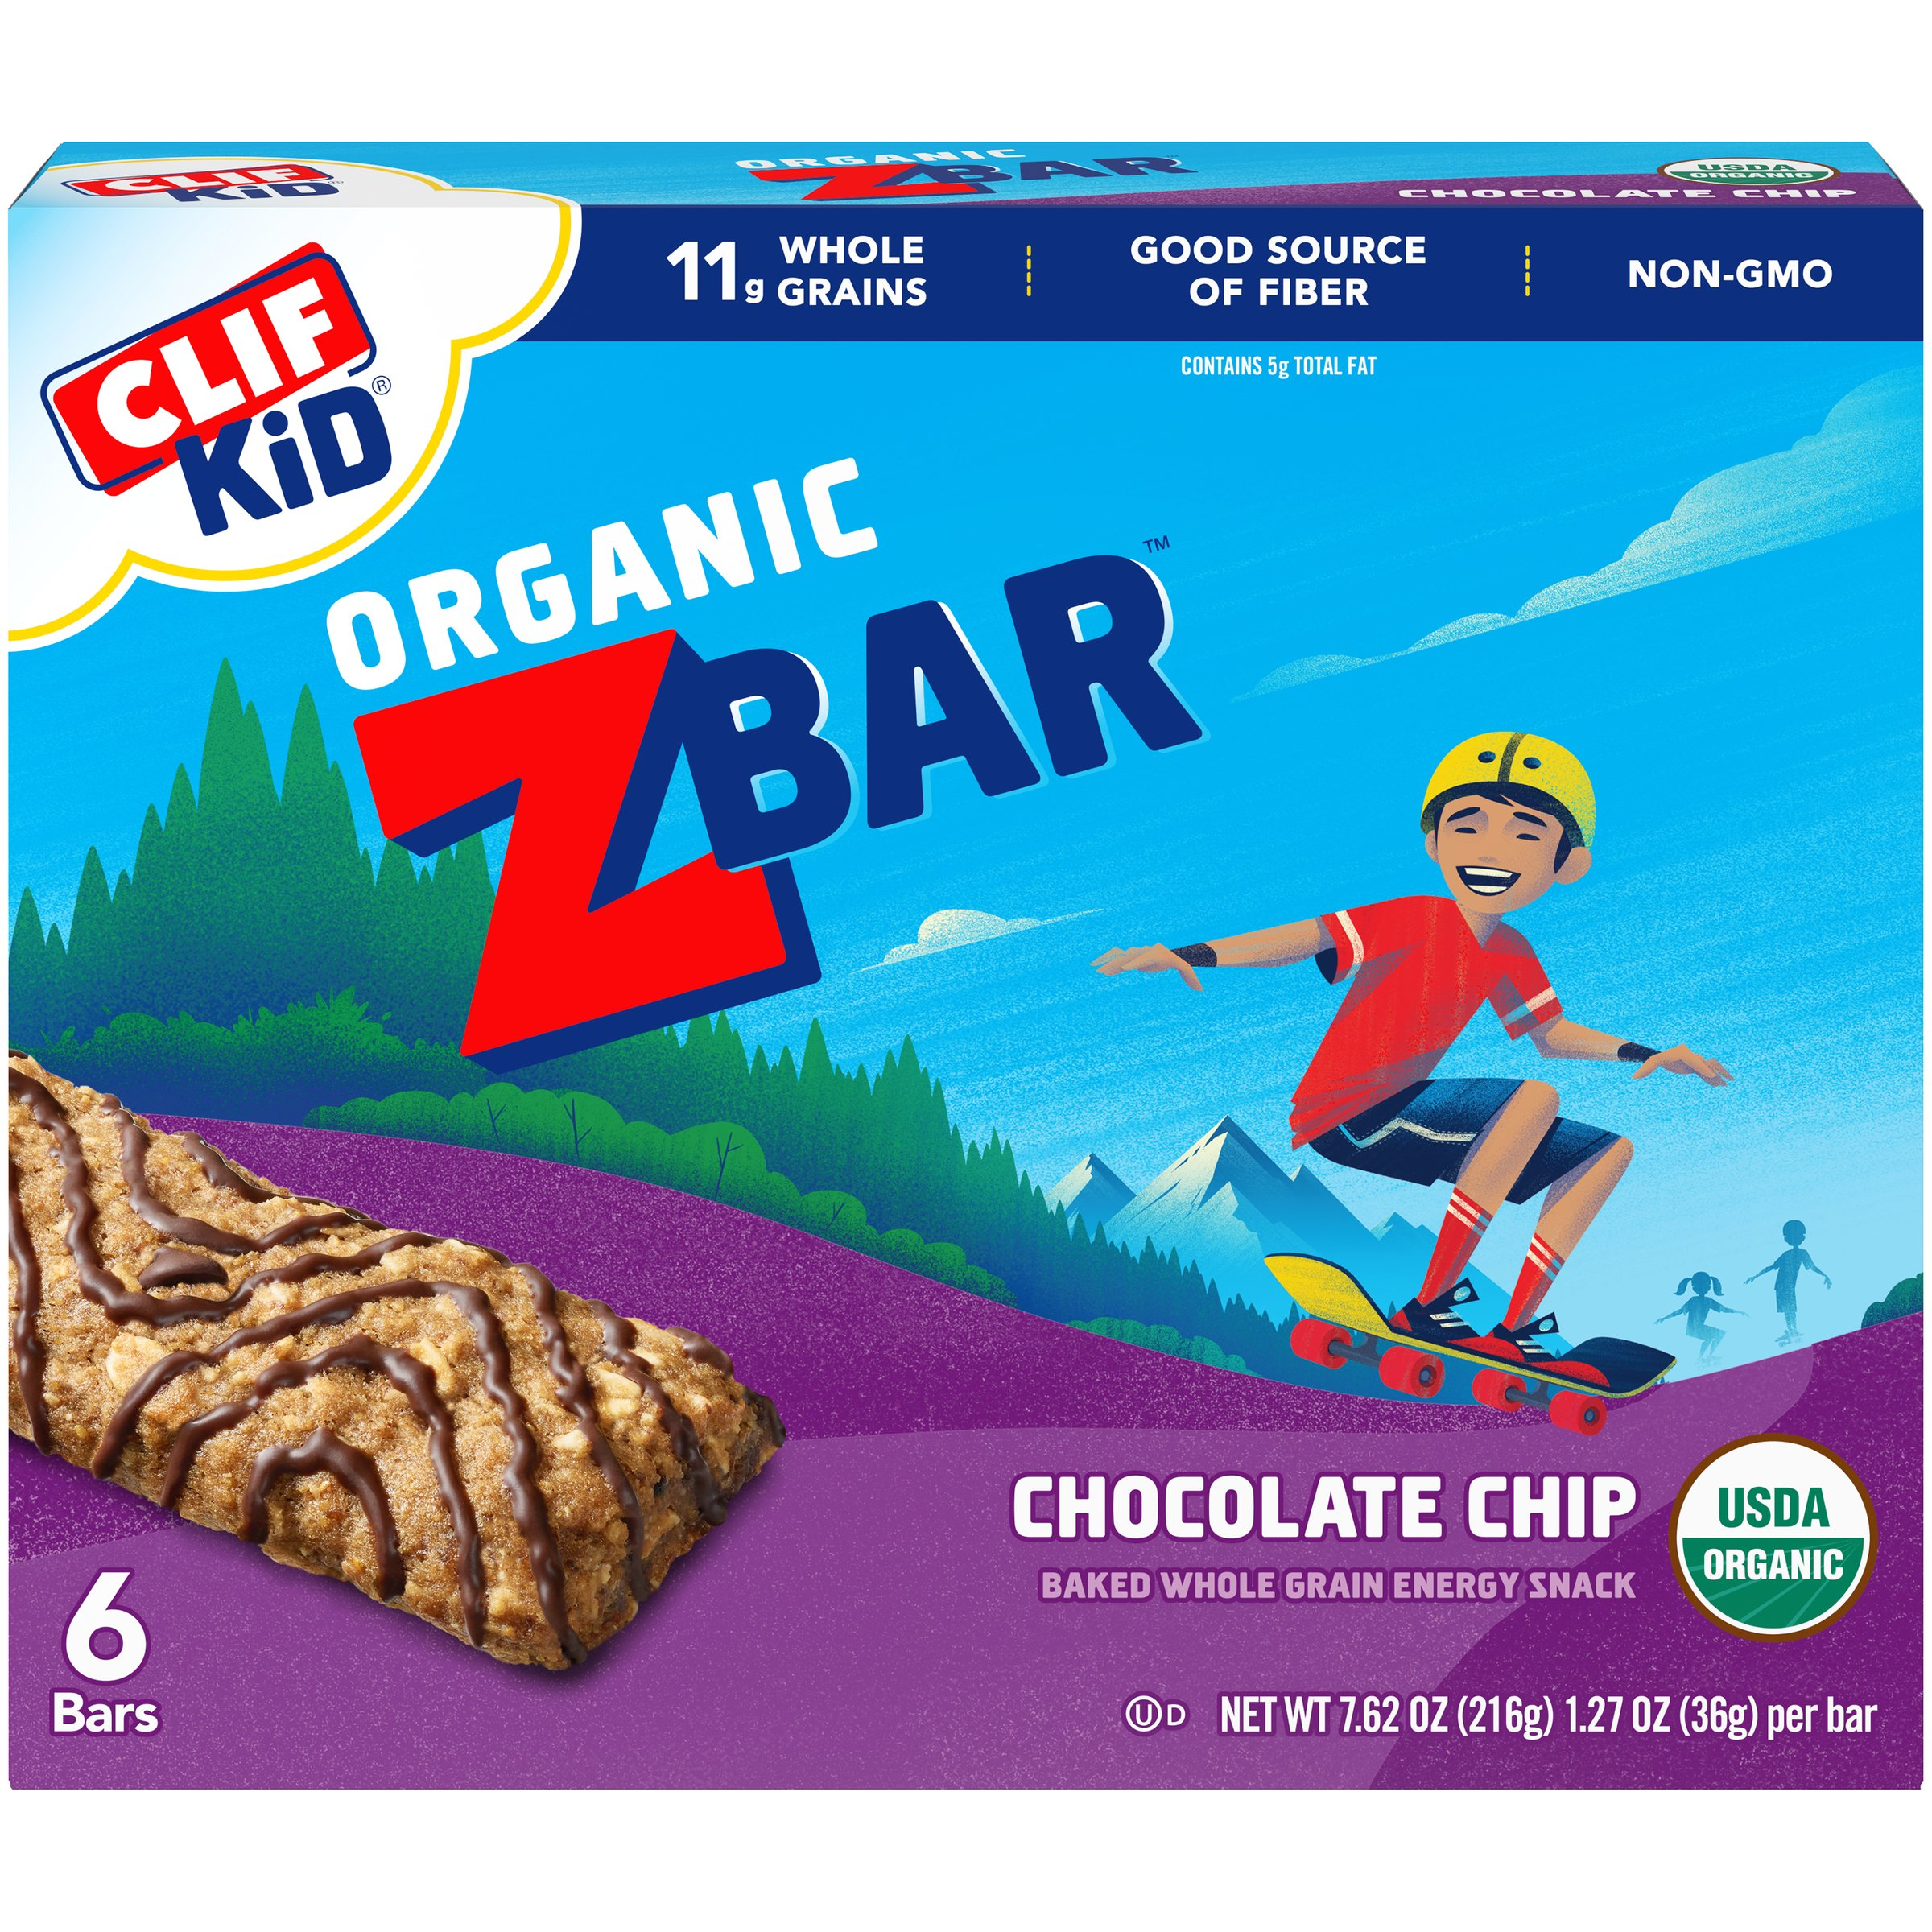 Clif Kid Organic Zbar, Chocolate Chip, 2g Protein, 6 Ct